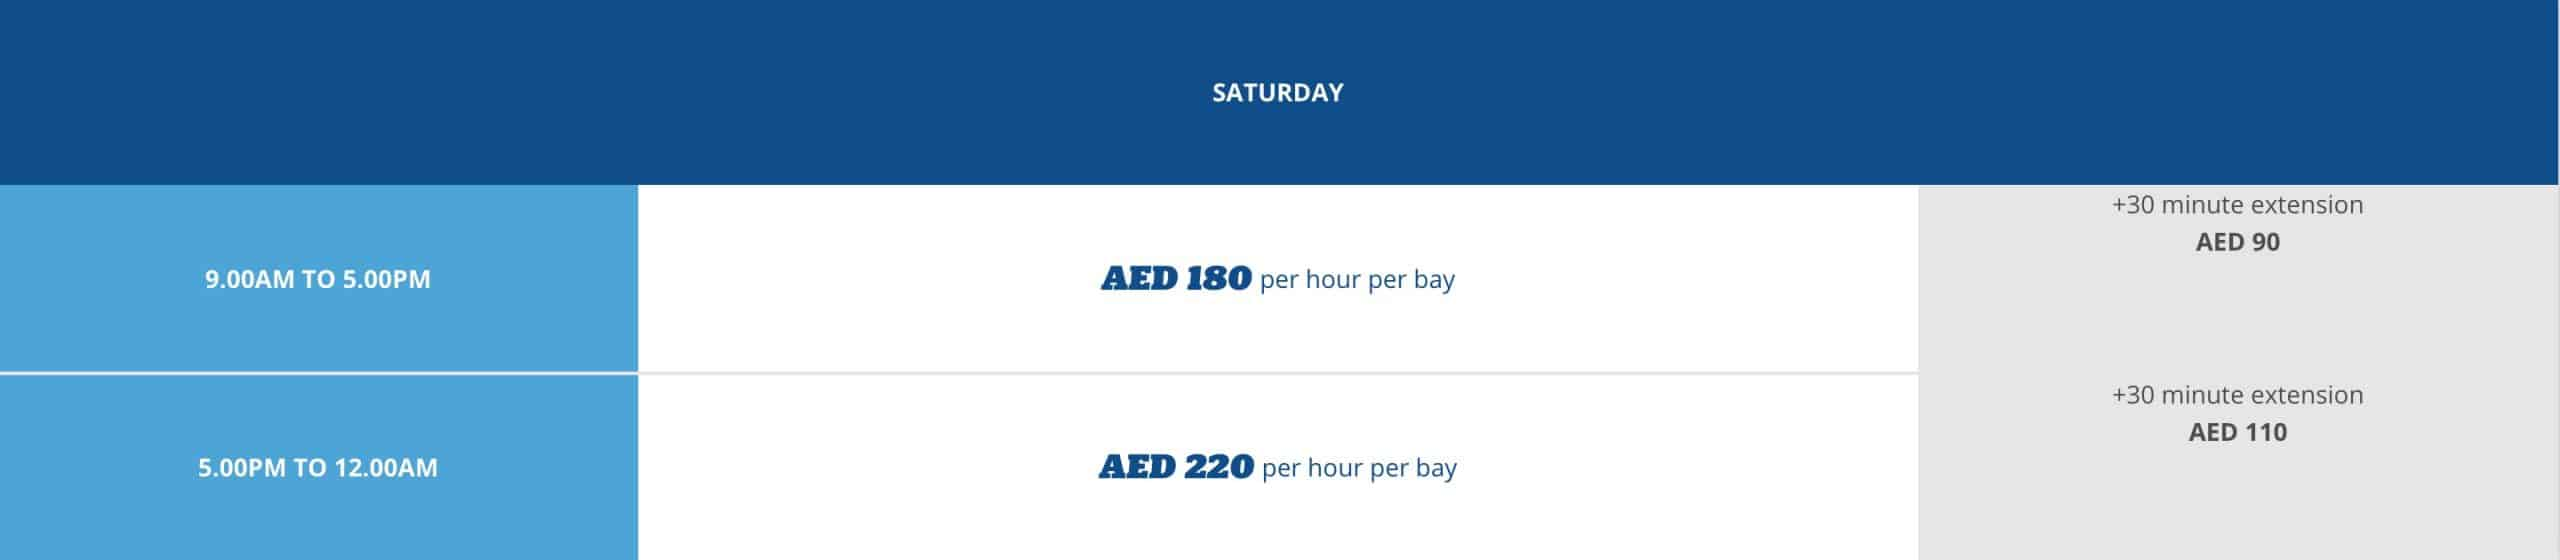 SATURDAY: 9 am – 5 pm: AED 180 PER HOUR PER BAY NOTE: AED 90 FOR EXTRA 30 MINS 5 pm – 12 am: AED 220 PER HOUR PER BAY NOTE: AED 110 FOR 30 EXTRA MINS